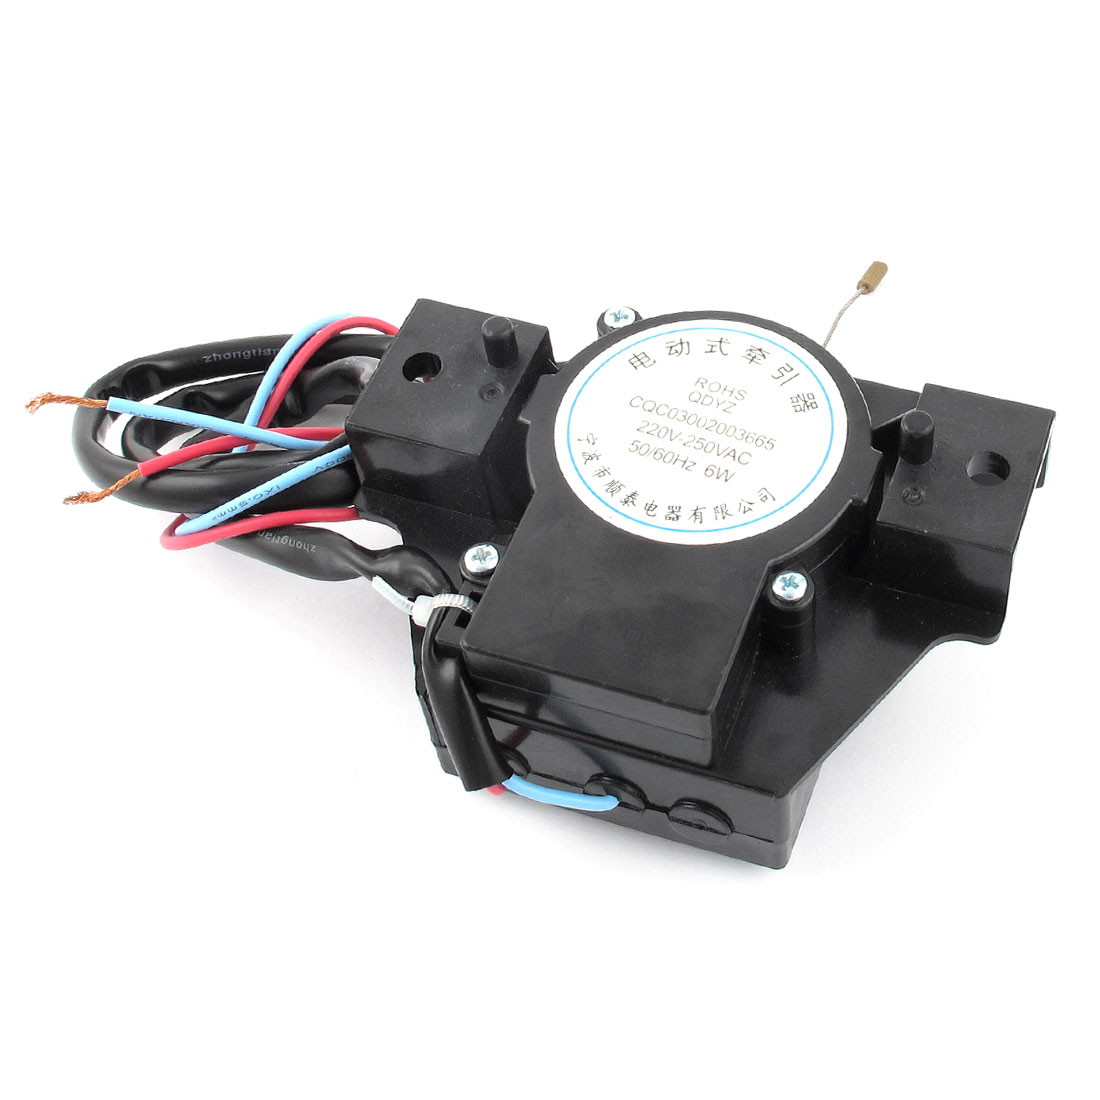 AC 220V-250V 50/60Hz 6Watt Drain Motor Tractor Black for Sanyo Washing Machine